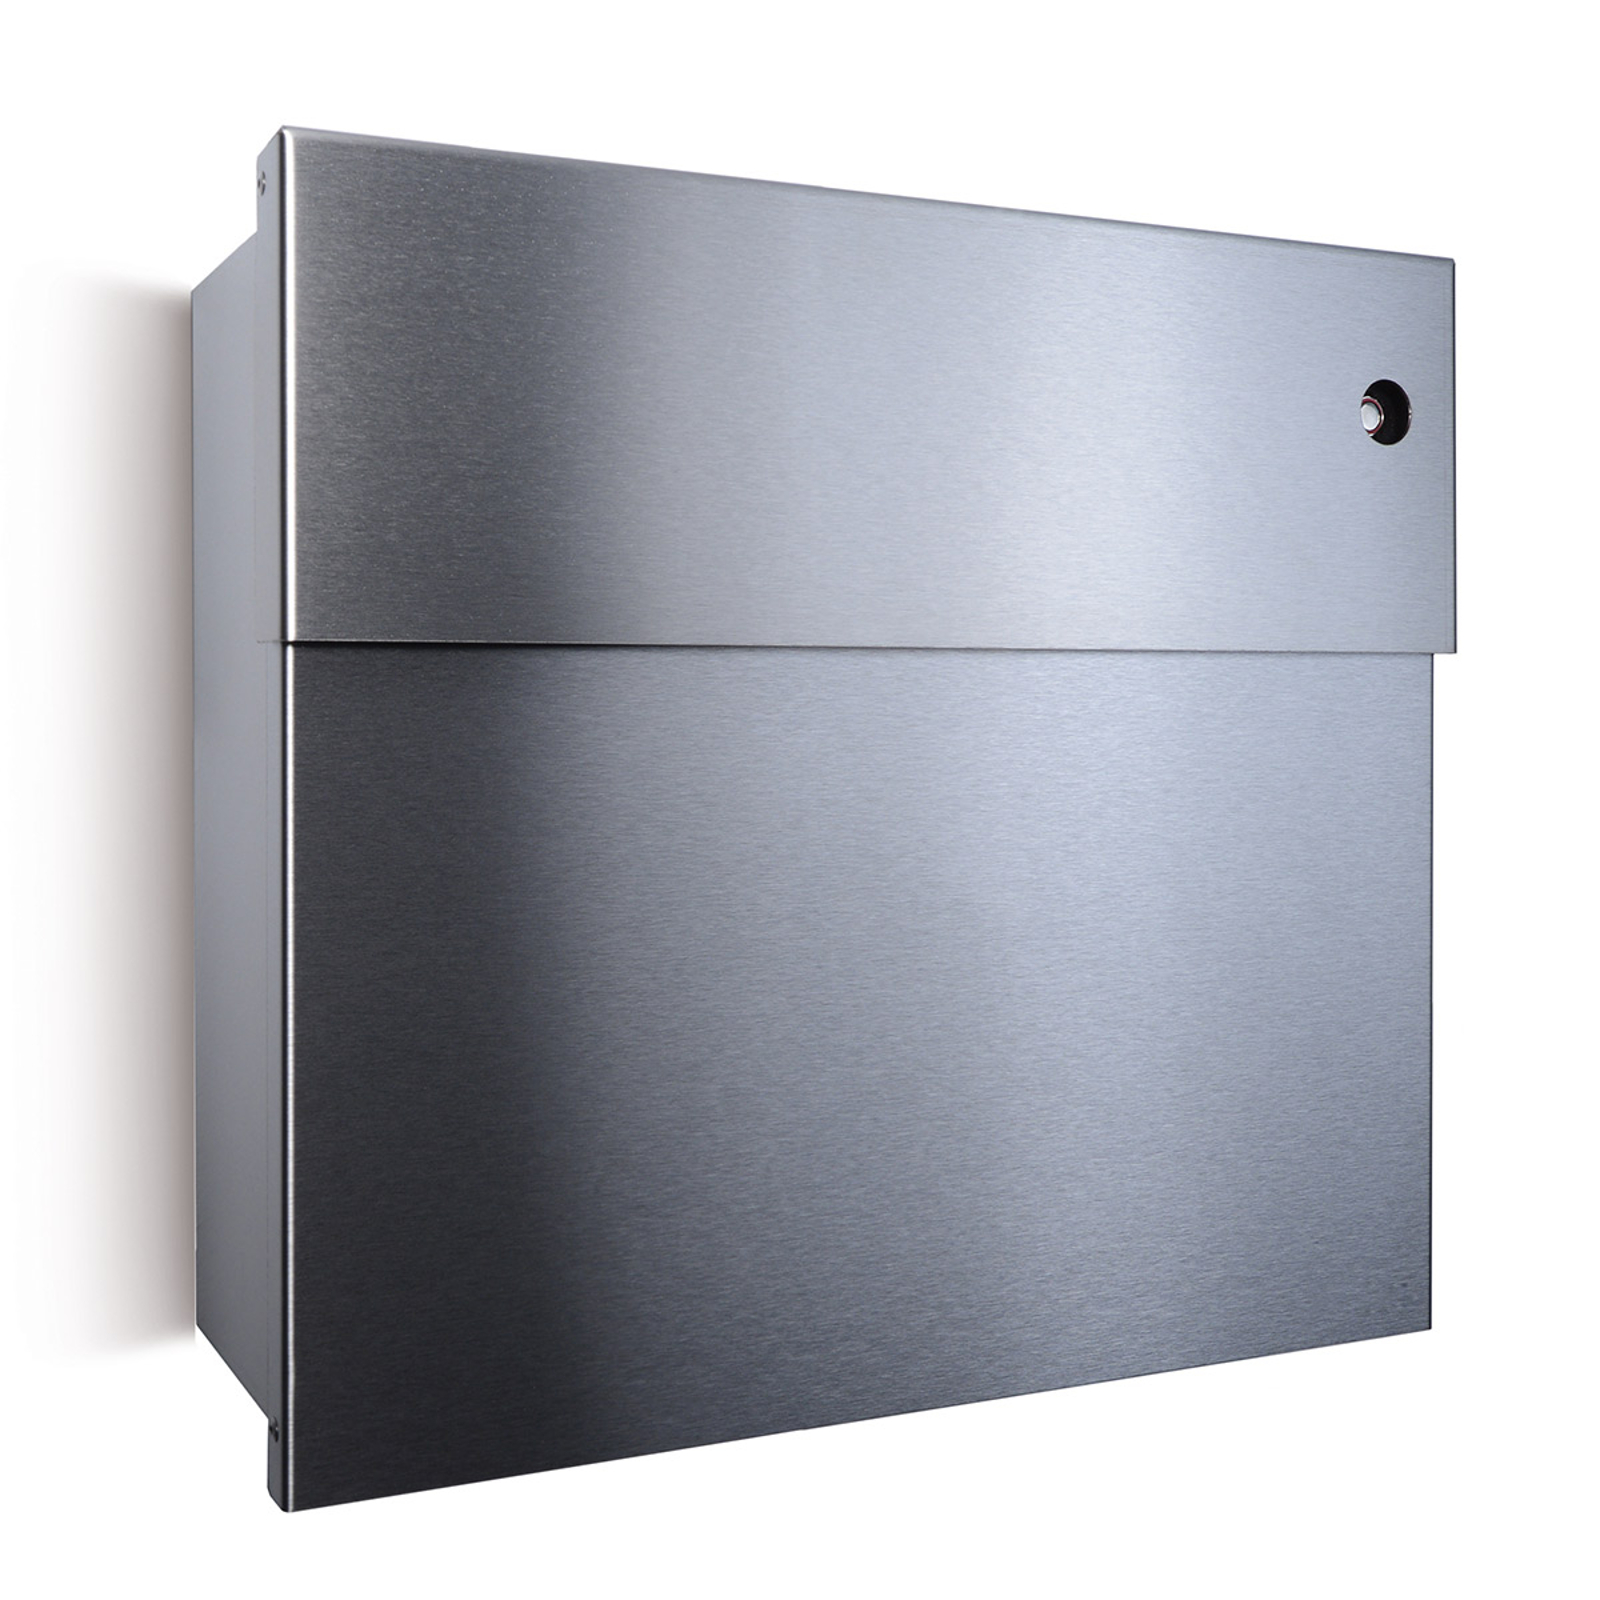 Letterman IV letterbox, red bell, stainless steel_1057142_1